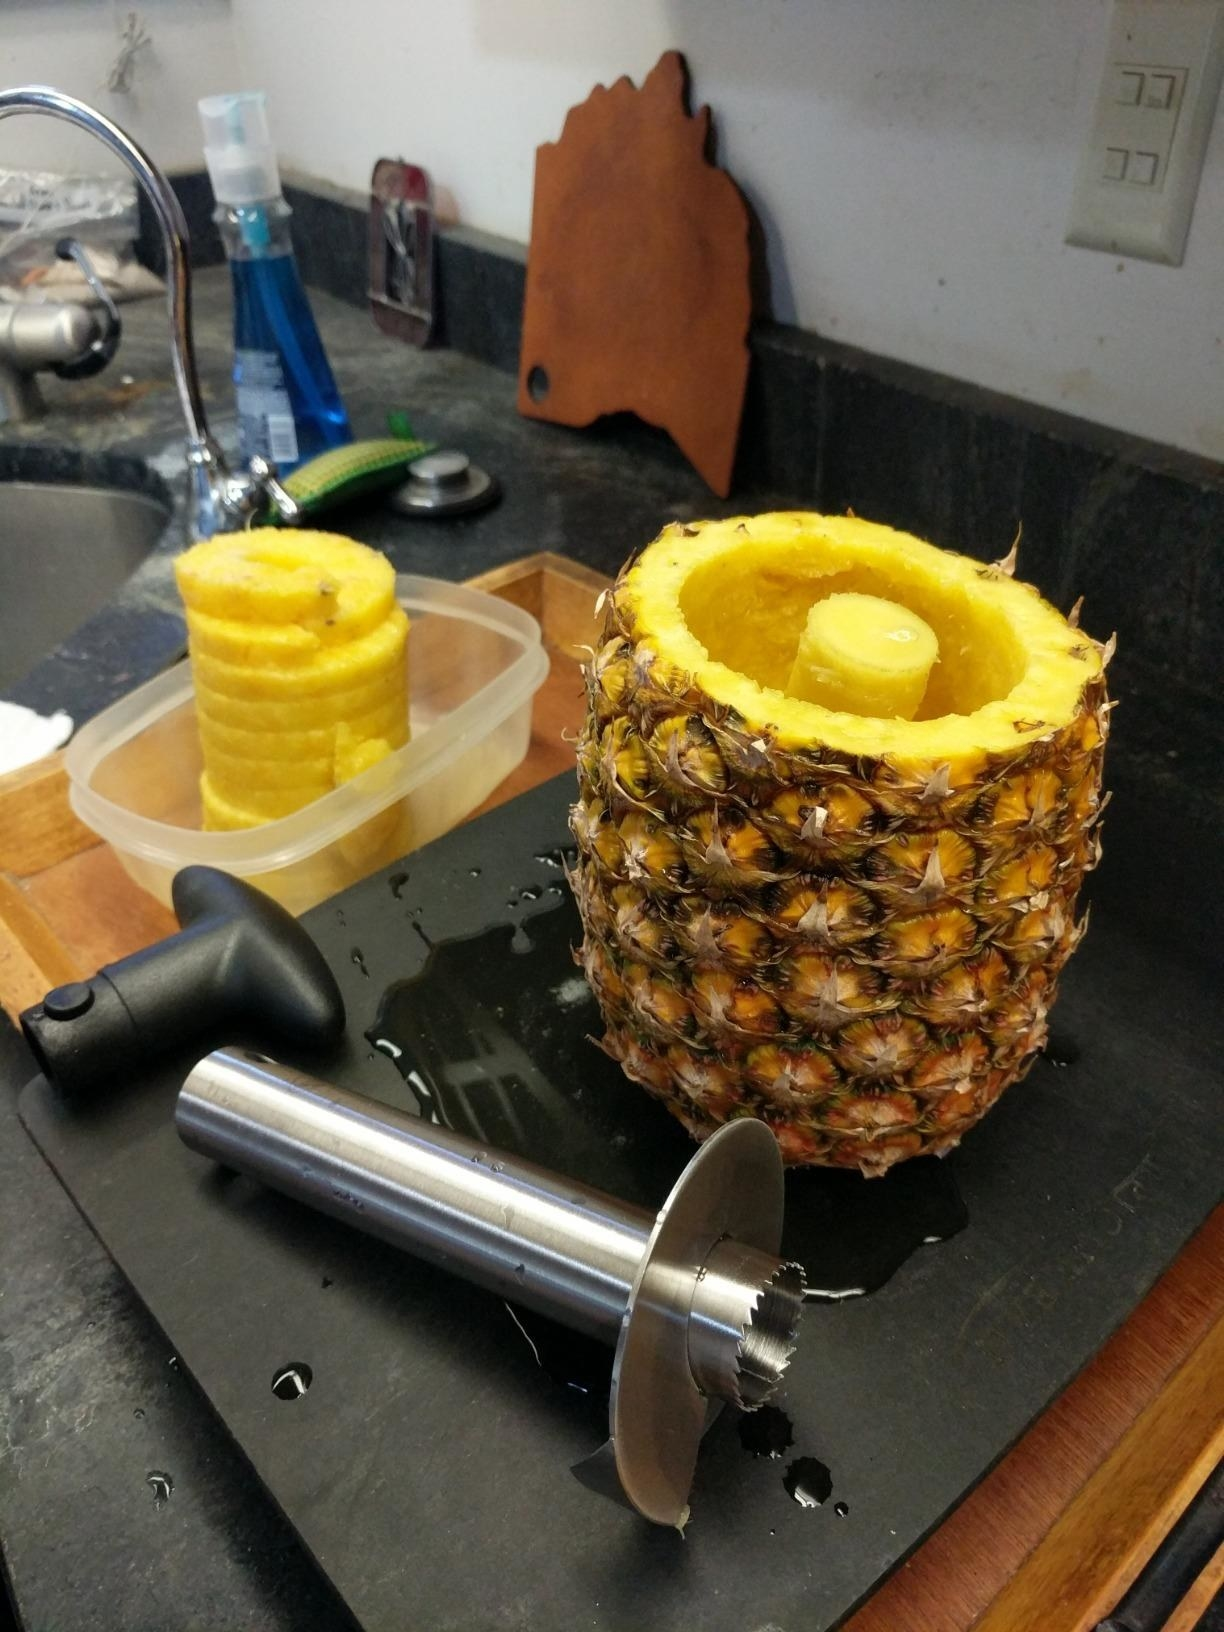 The tool on a counter with the cored pineapple shell and spiral-cut fruit in a container